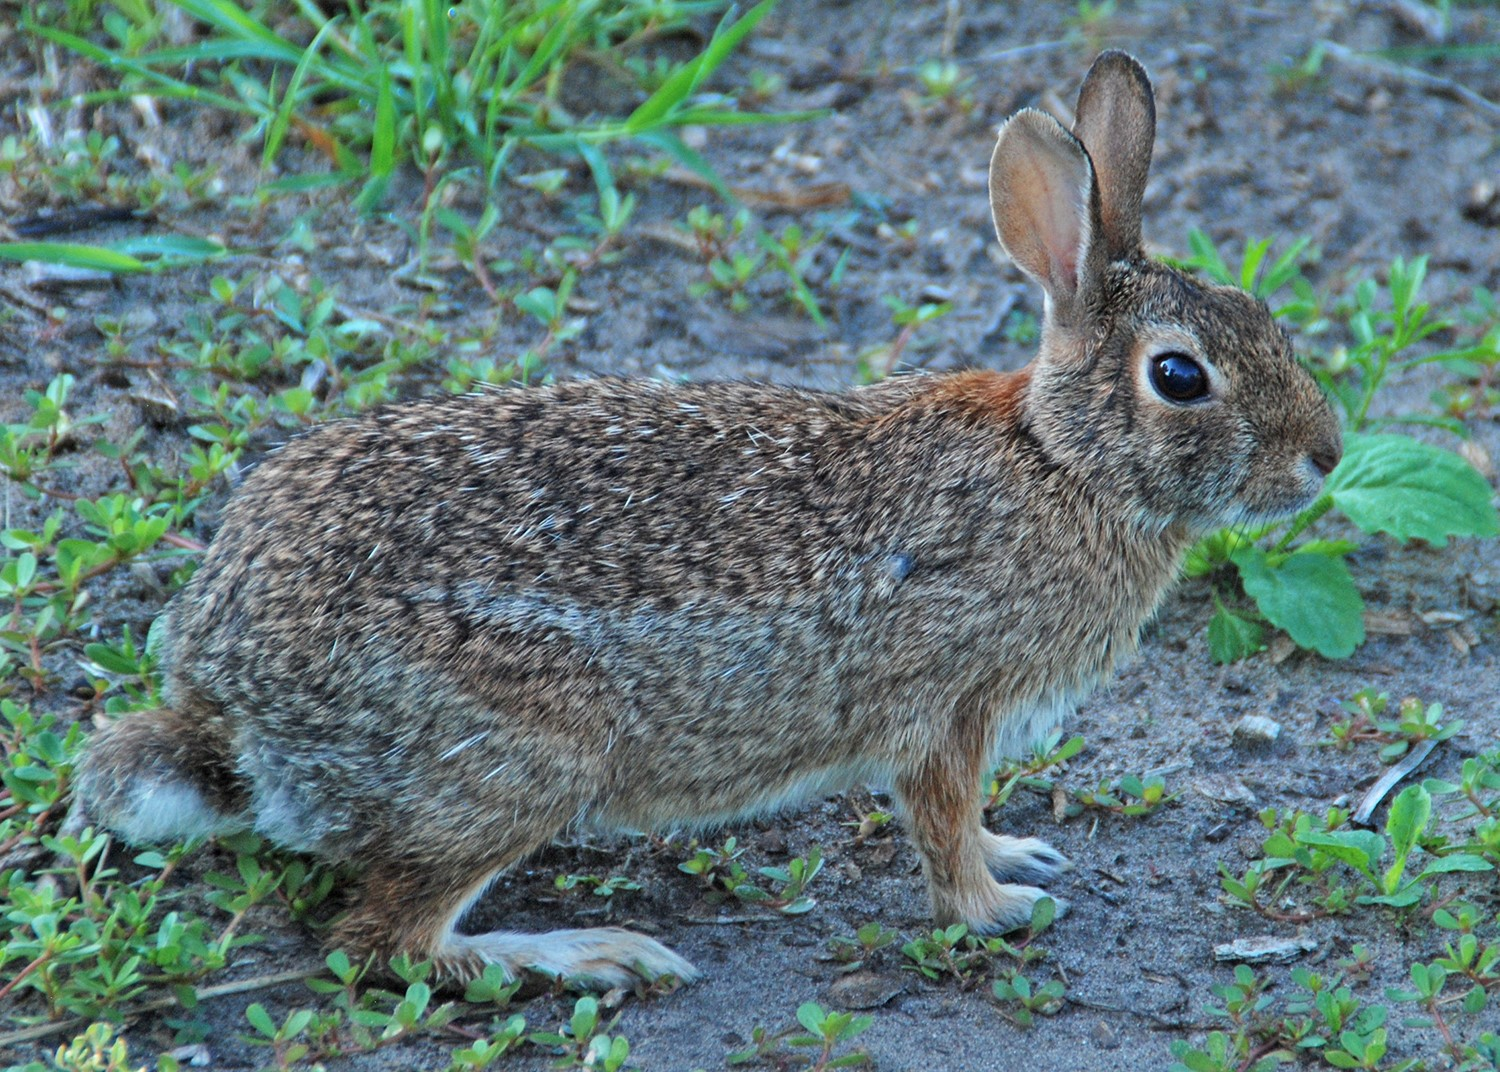 Fall Garden Tasks to Protect Your Landscape from Winter Wildlife Damage